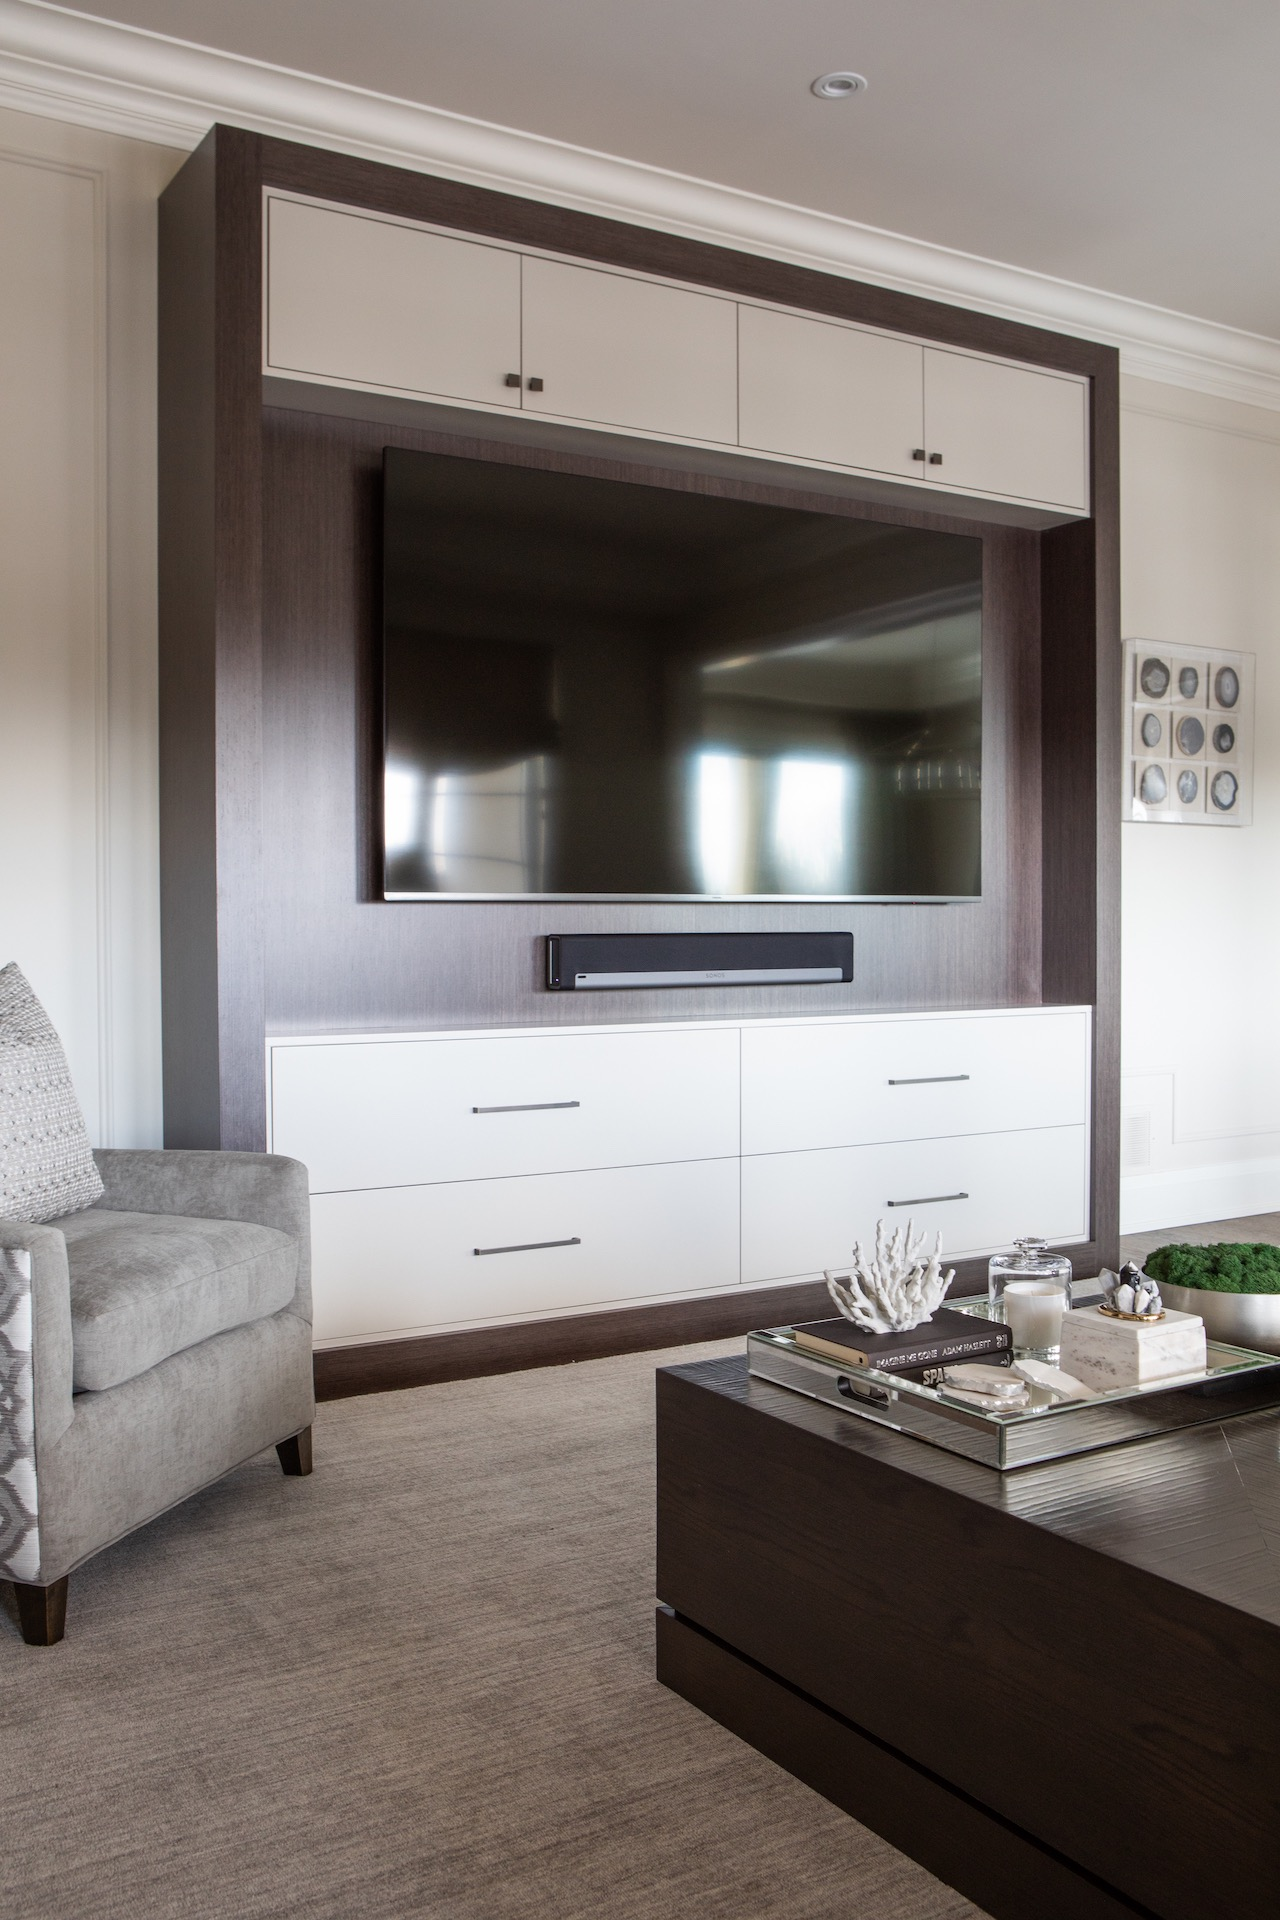 TV mounted on wall in wood cabinet